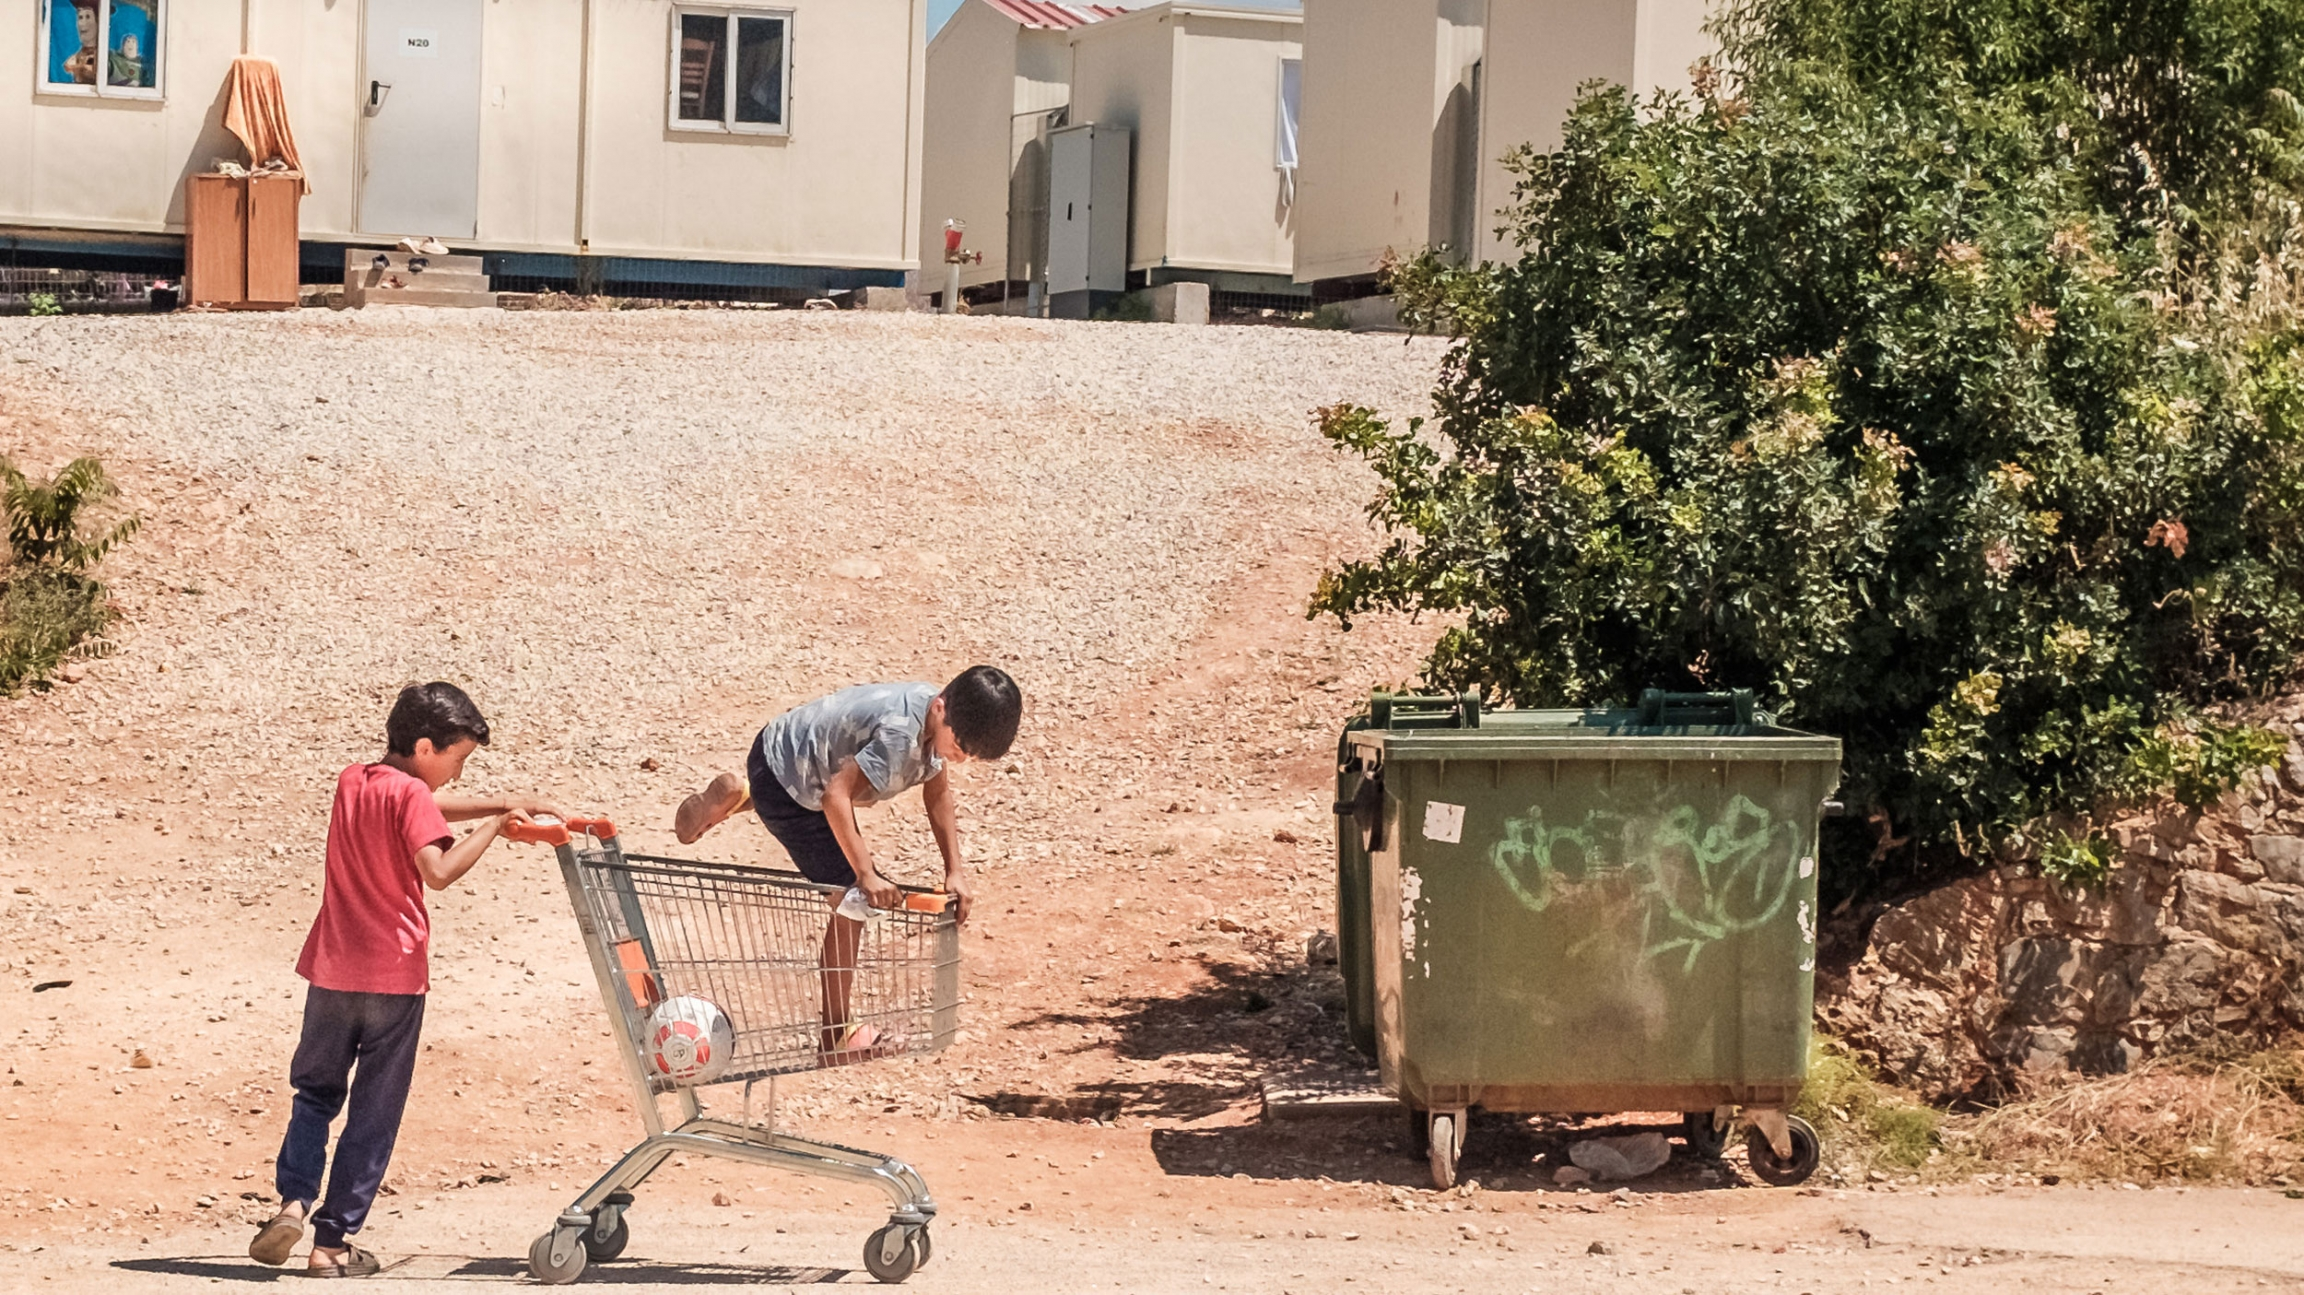 Two young children are shown playing with a grocery cart with container homes shown in the background.